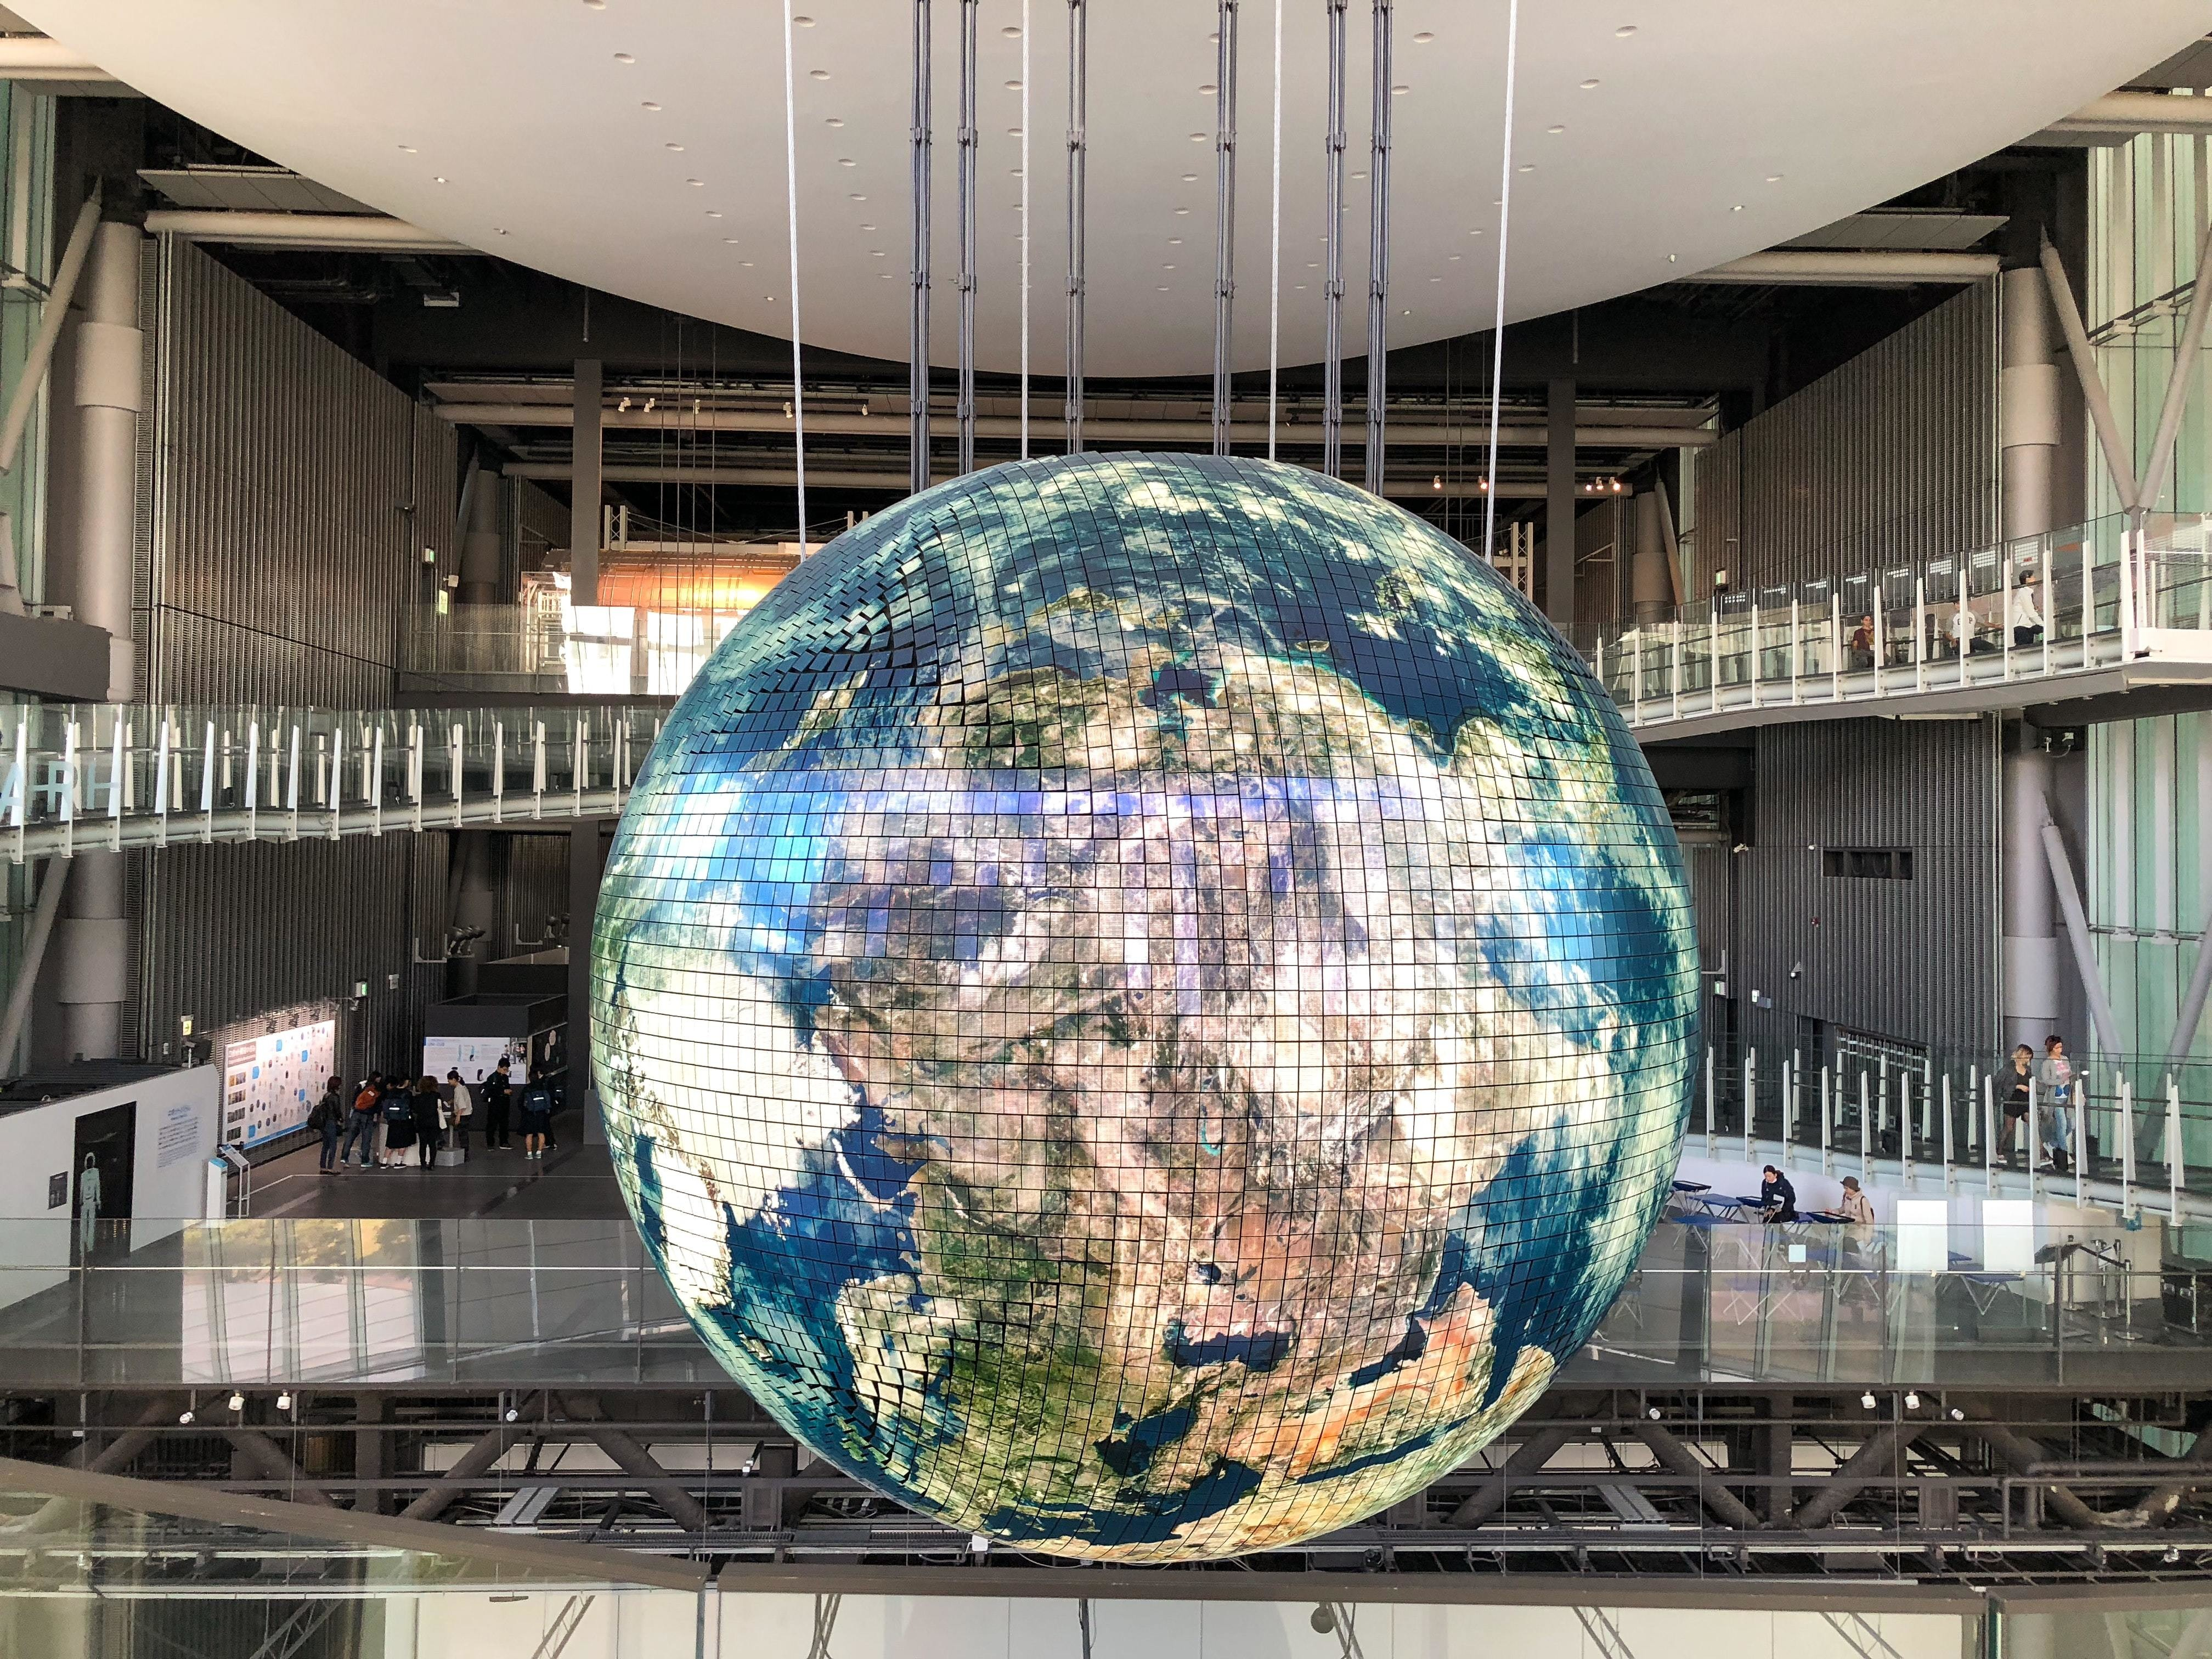 A giant Earth shaped light in a large building